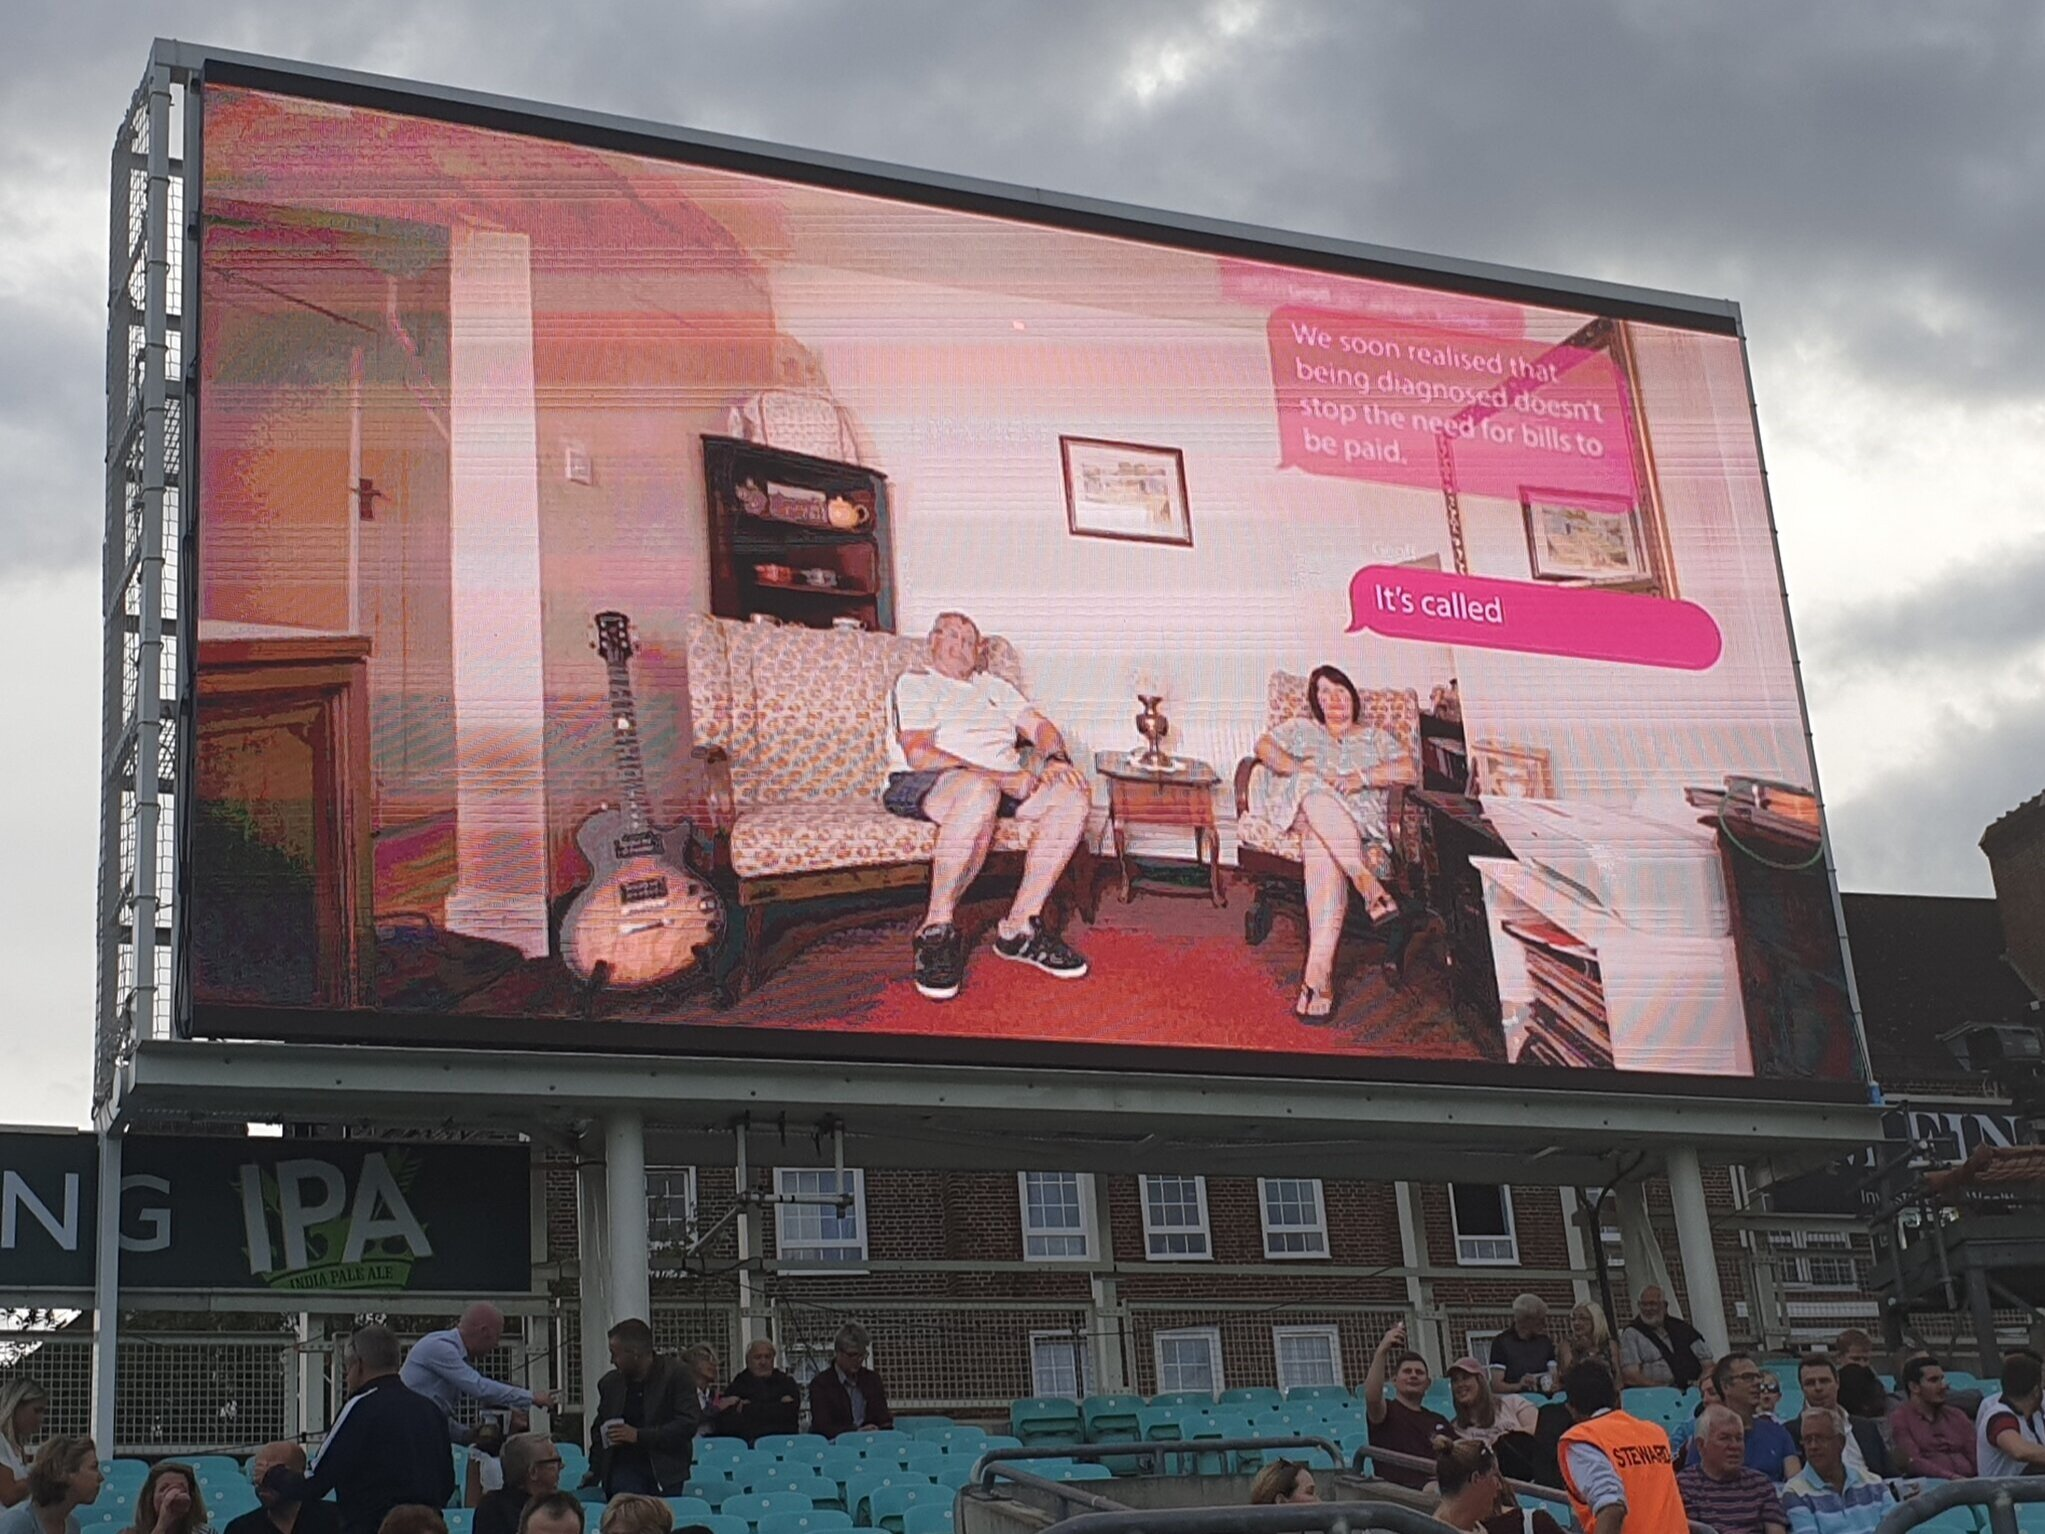 SimPal video being shown publicly for the first time at the Oval home of Surrey Cricket Club